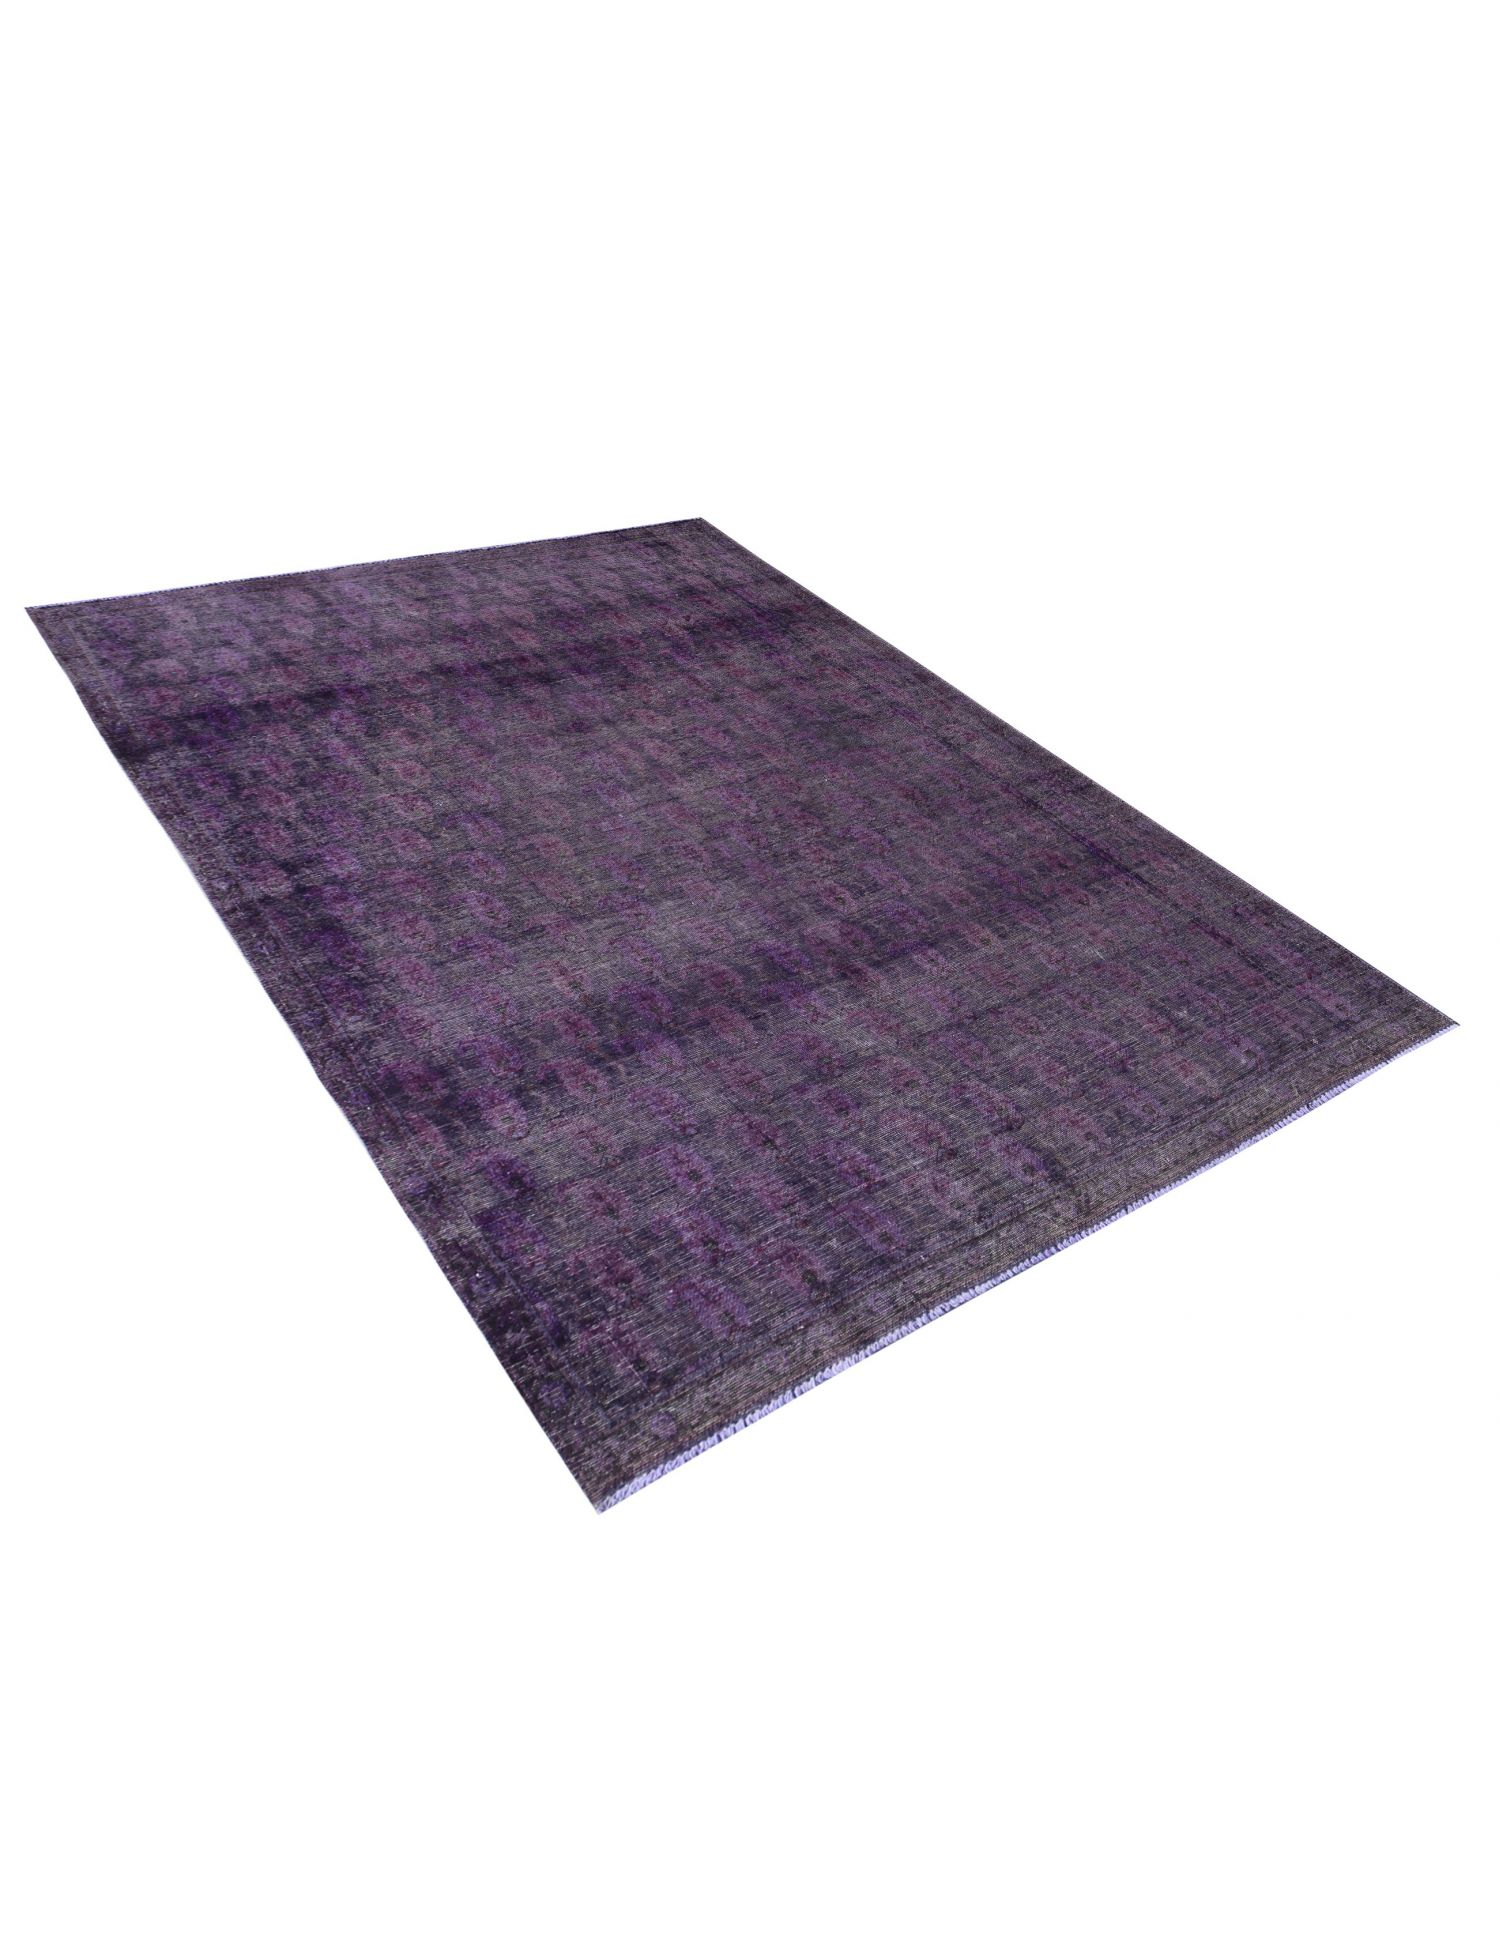 Vintage Carpet  purple <br/>300 x 226 cm